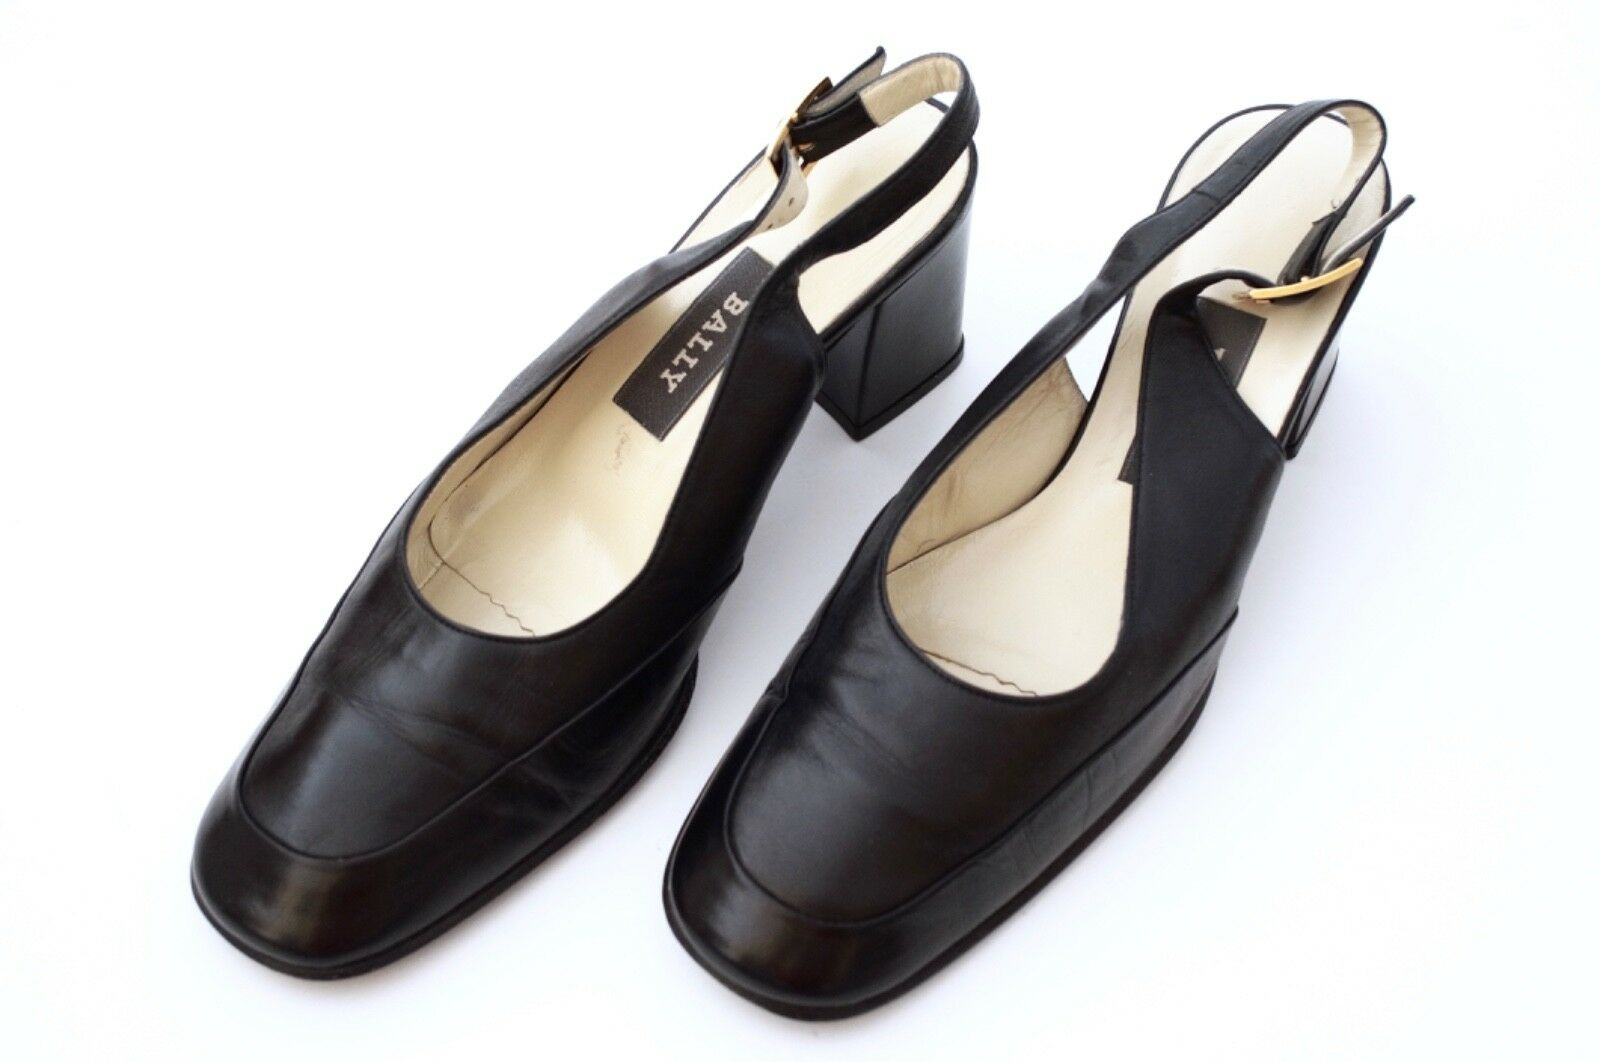 BALLY femmes LEATHER SLINGBACKS PUMPS SANDALS Taille 7 noir chaussures TAHITI ITALY